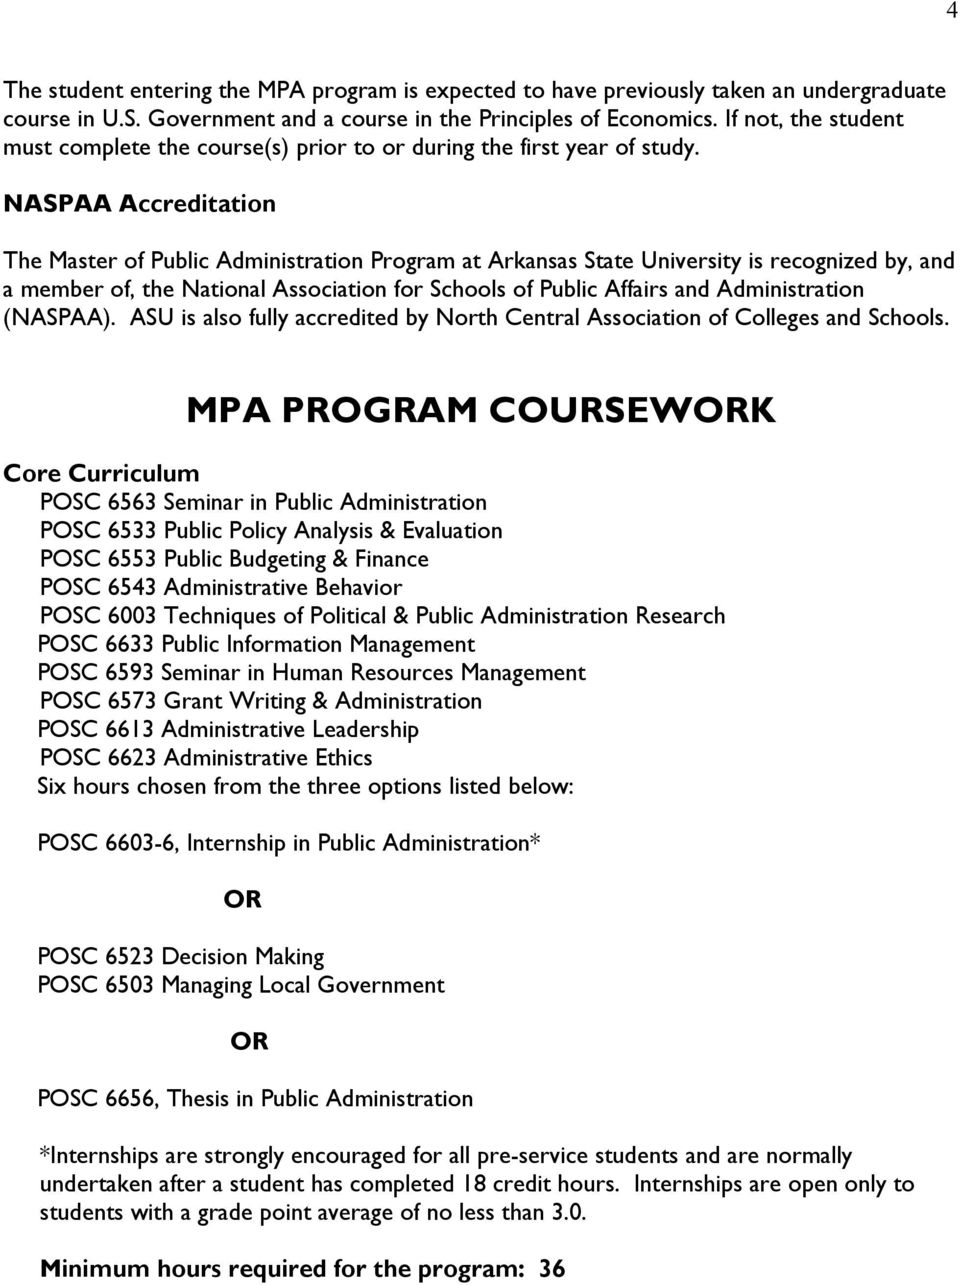 NASPAA Accreditation The Master of Public Administration Program at Arkansas State University is recognized by, and a member of, the National Association for Schools of Public Affairs and